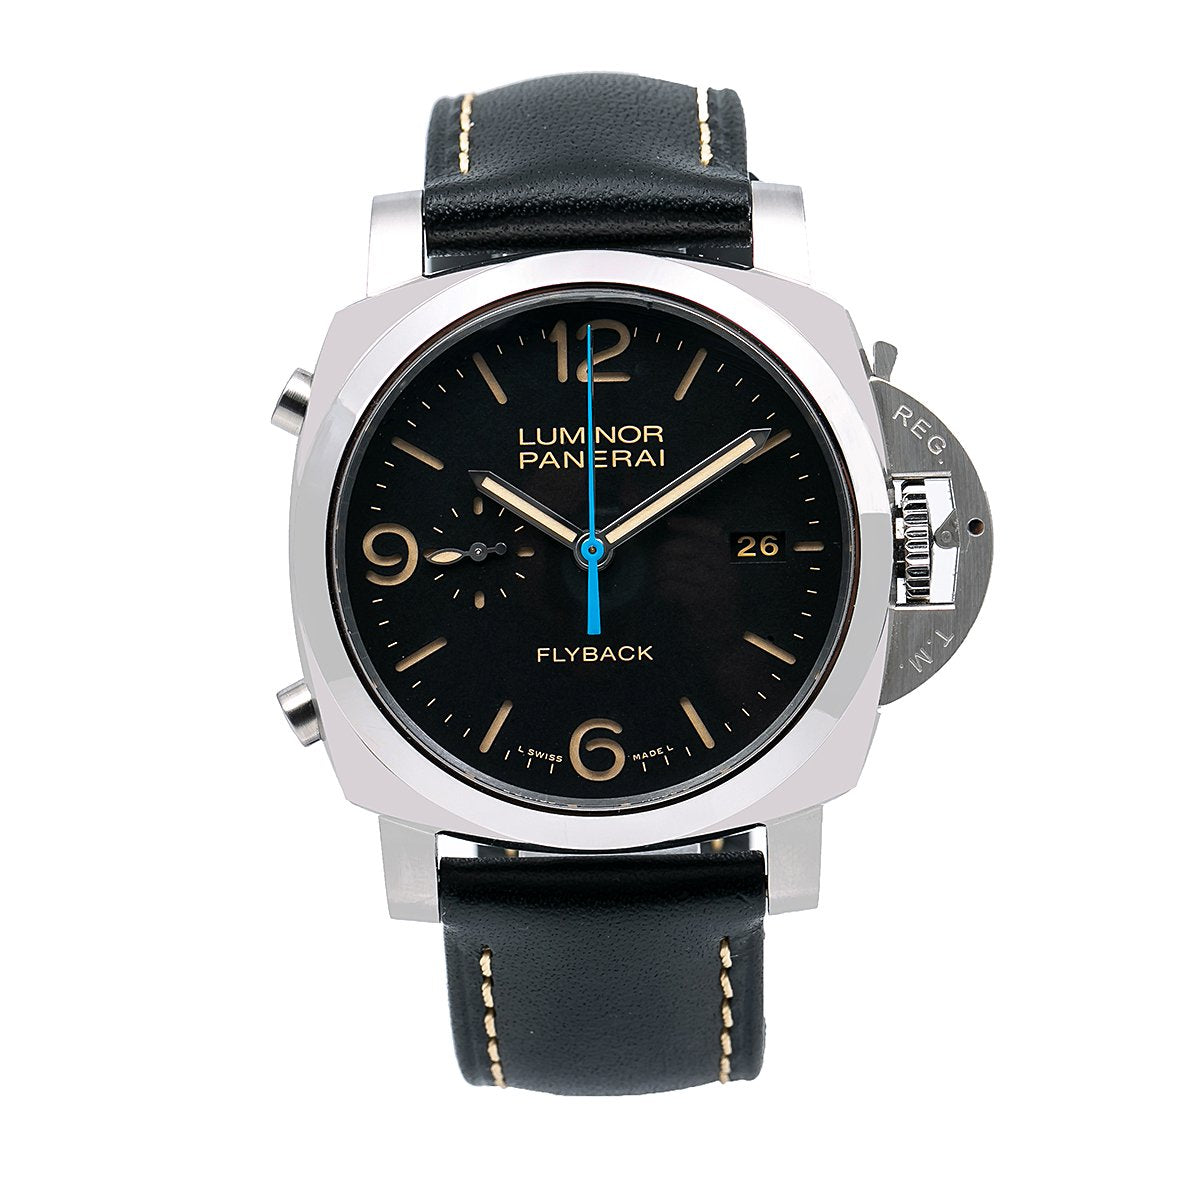 Panerai Luminor 1950 3 Days Chrono Flyback PAM00524 44MM Black Dial With Leather Bracelet